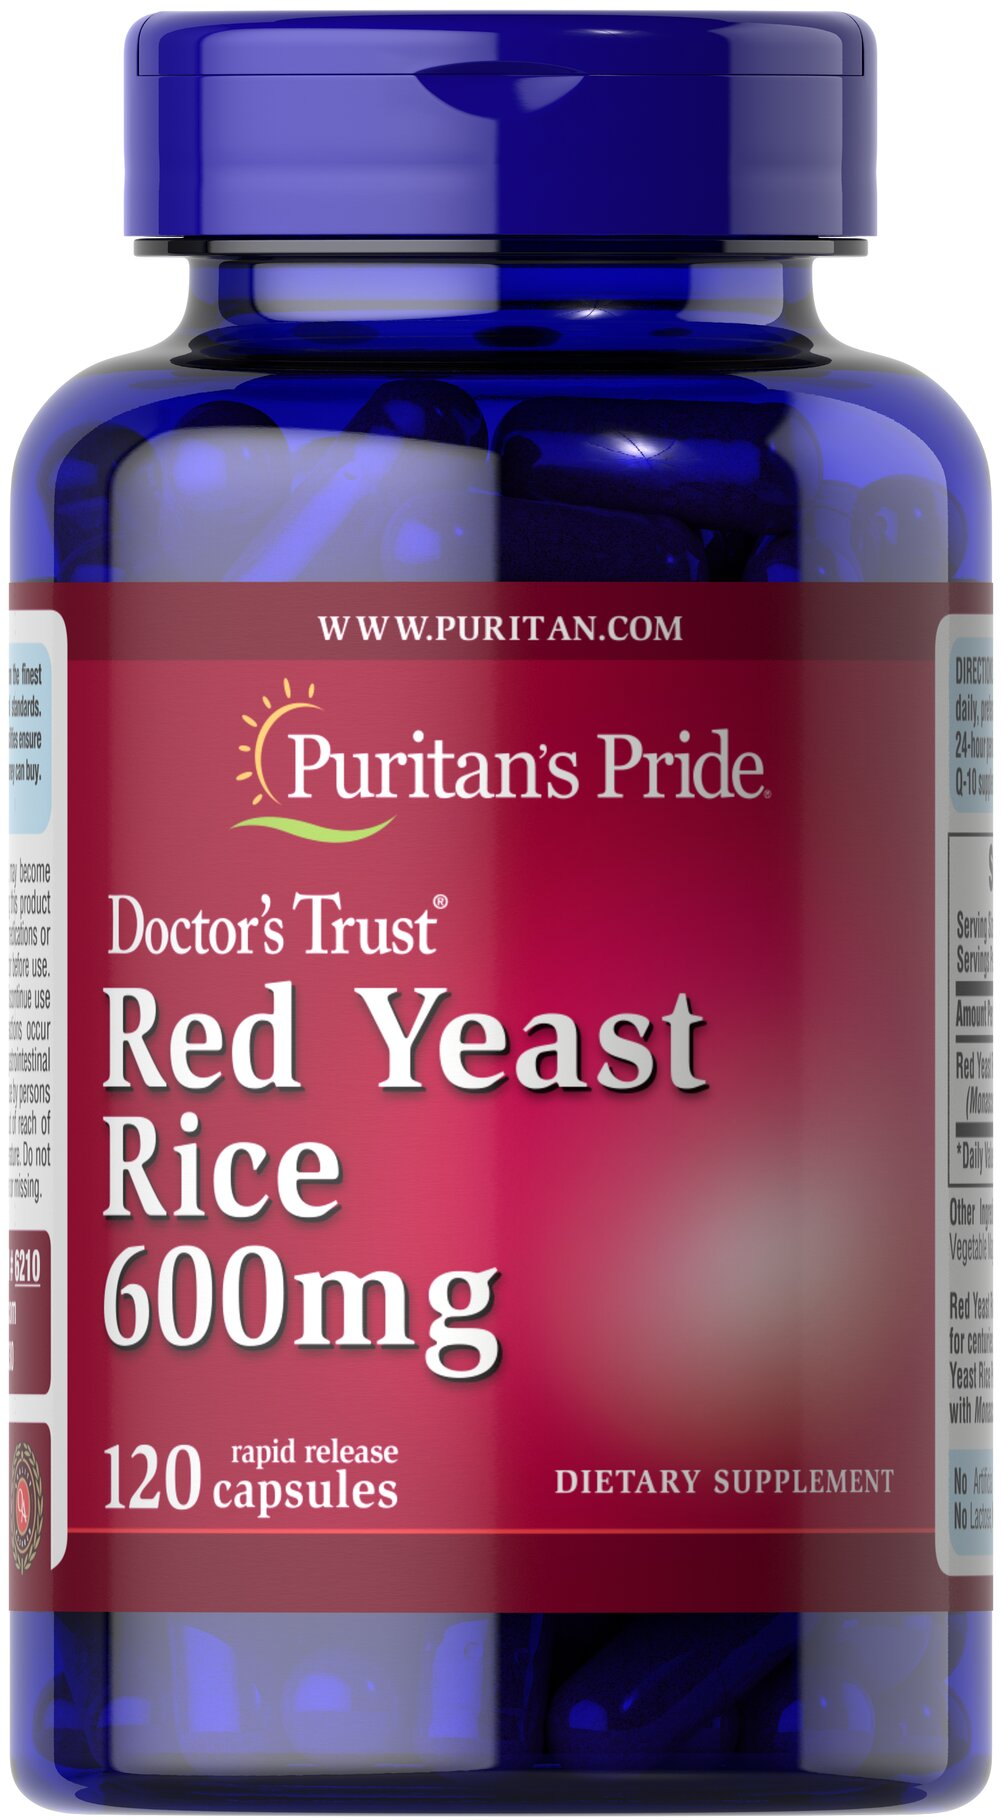 Red Yeast Rice 600 mg <p>Red Yeast Rice has been a staple food of the traditional Chinese diet for centuries. During the Tang Dynasty, rice was dusted with crimson yeast, packed in barrels and patiently fermented for months to make Red Yeast Rice: A legendary Chinese tonic. Modern science's deepening understanding of Red Yeast Rice has made it a highly popular nutritional supplement.** Valued as a main food source as well as for other uses, Red Yeast Rice can be a wonderful addition to you